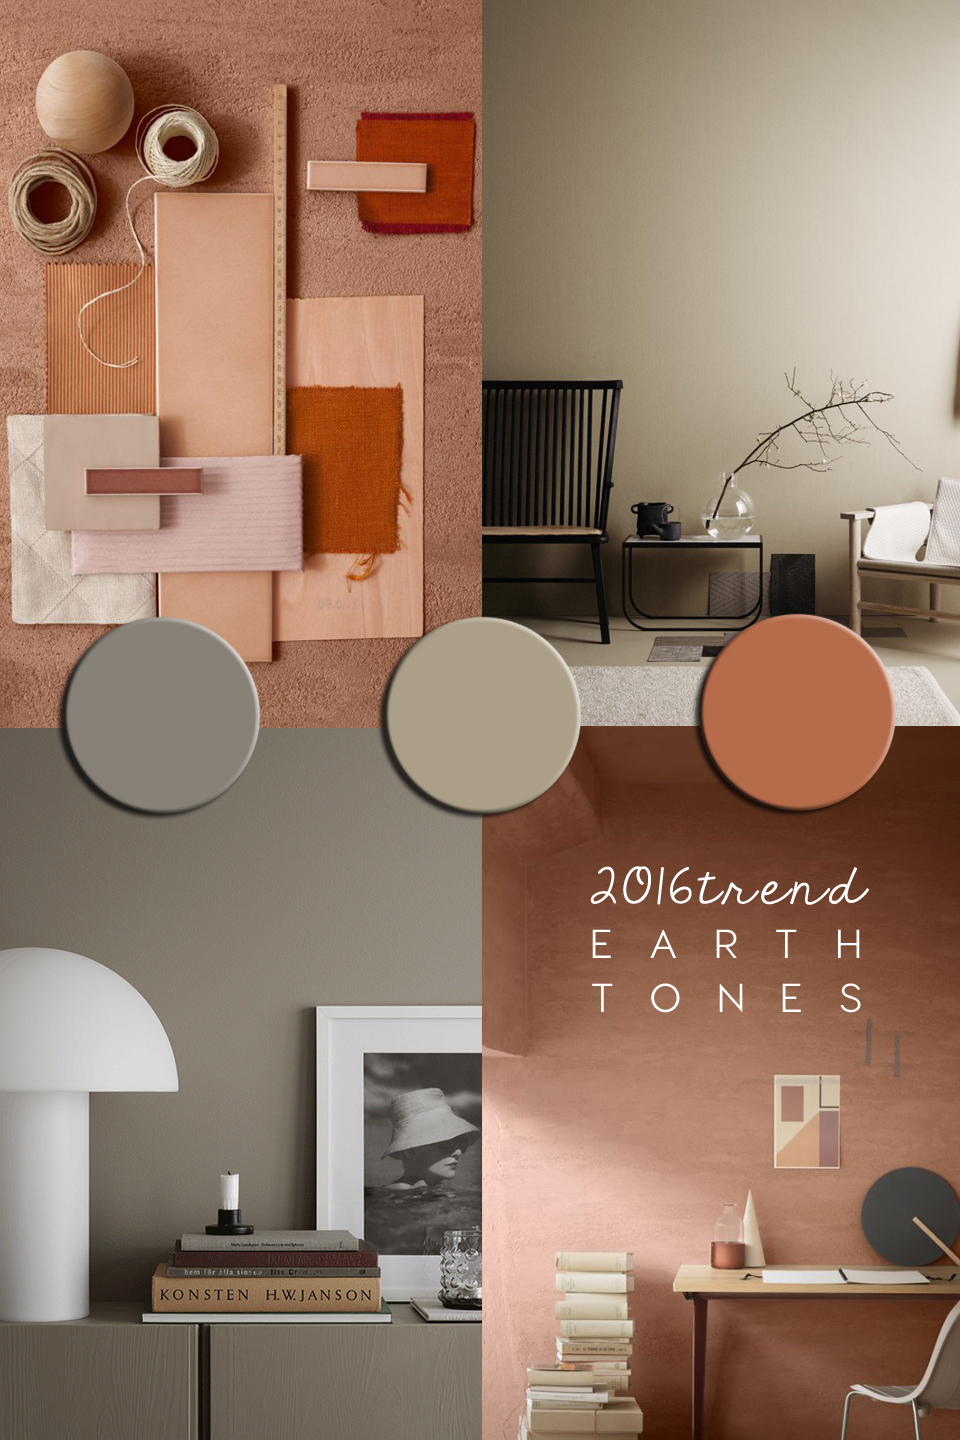 Earth tones interior trend